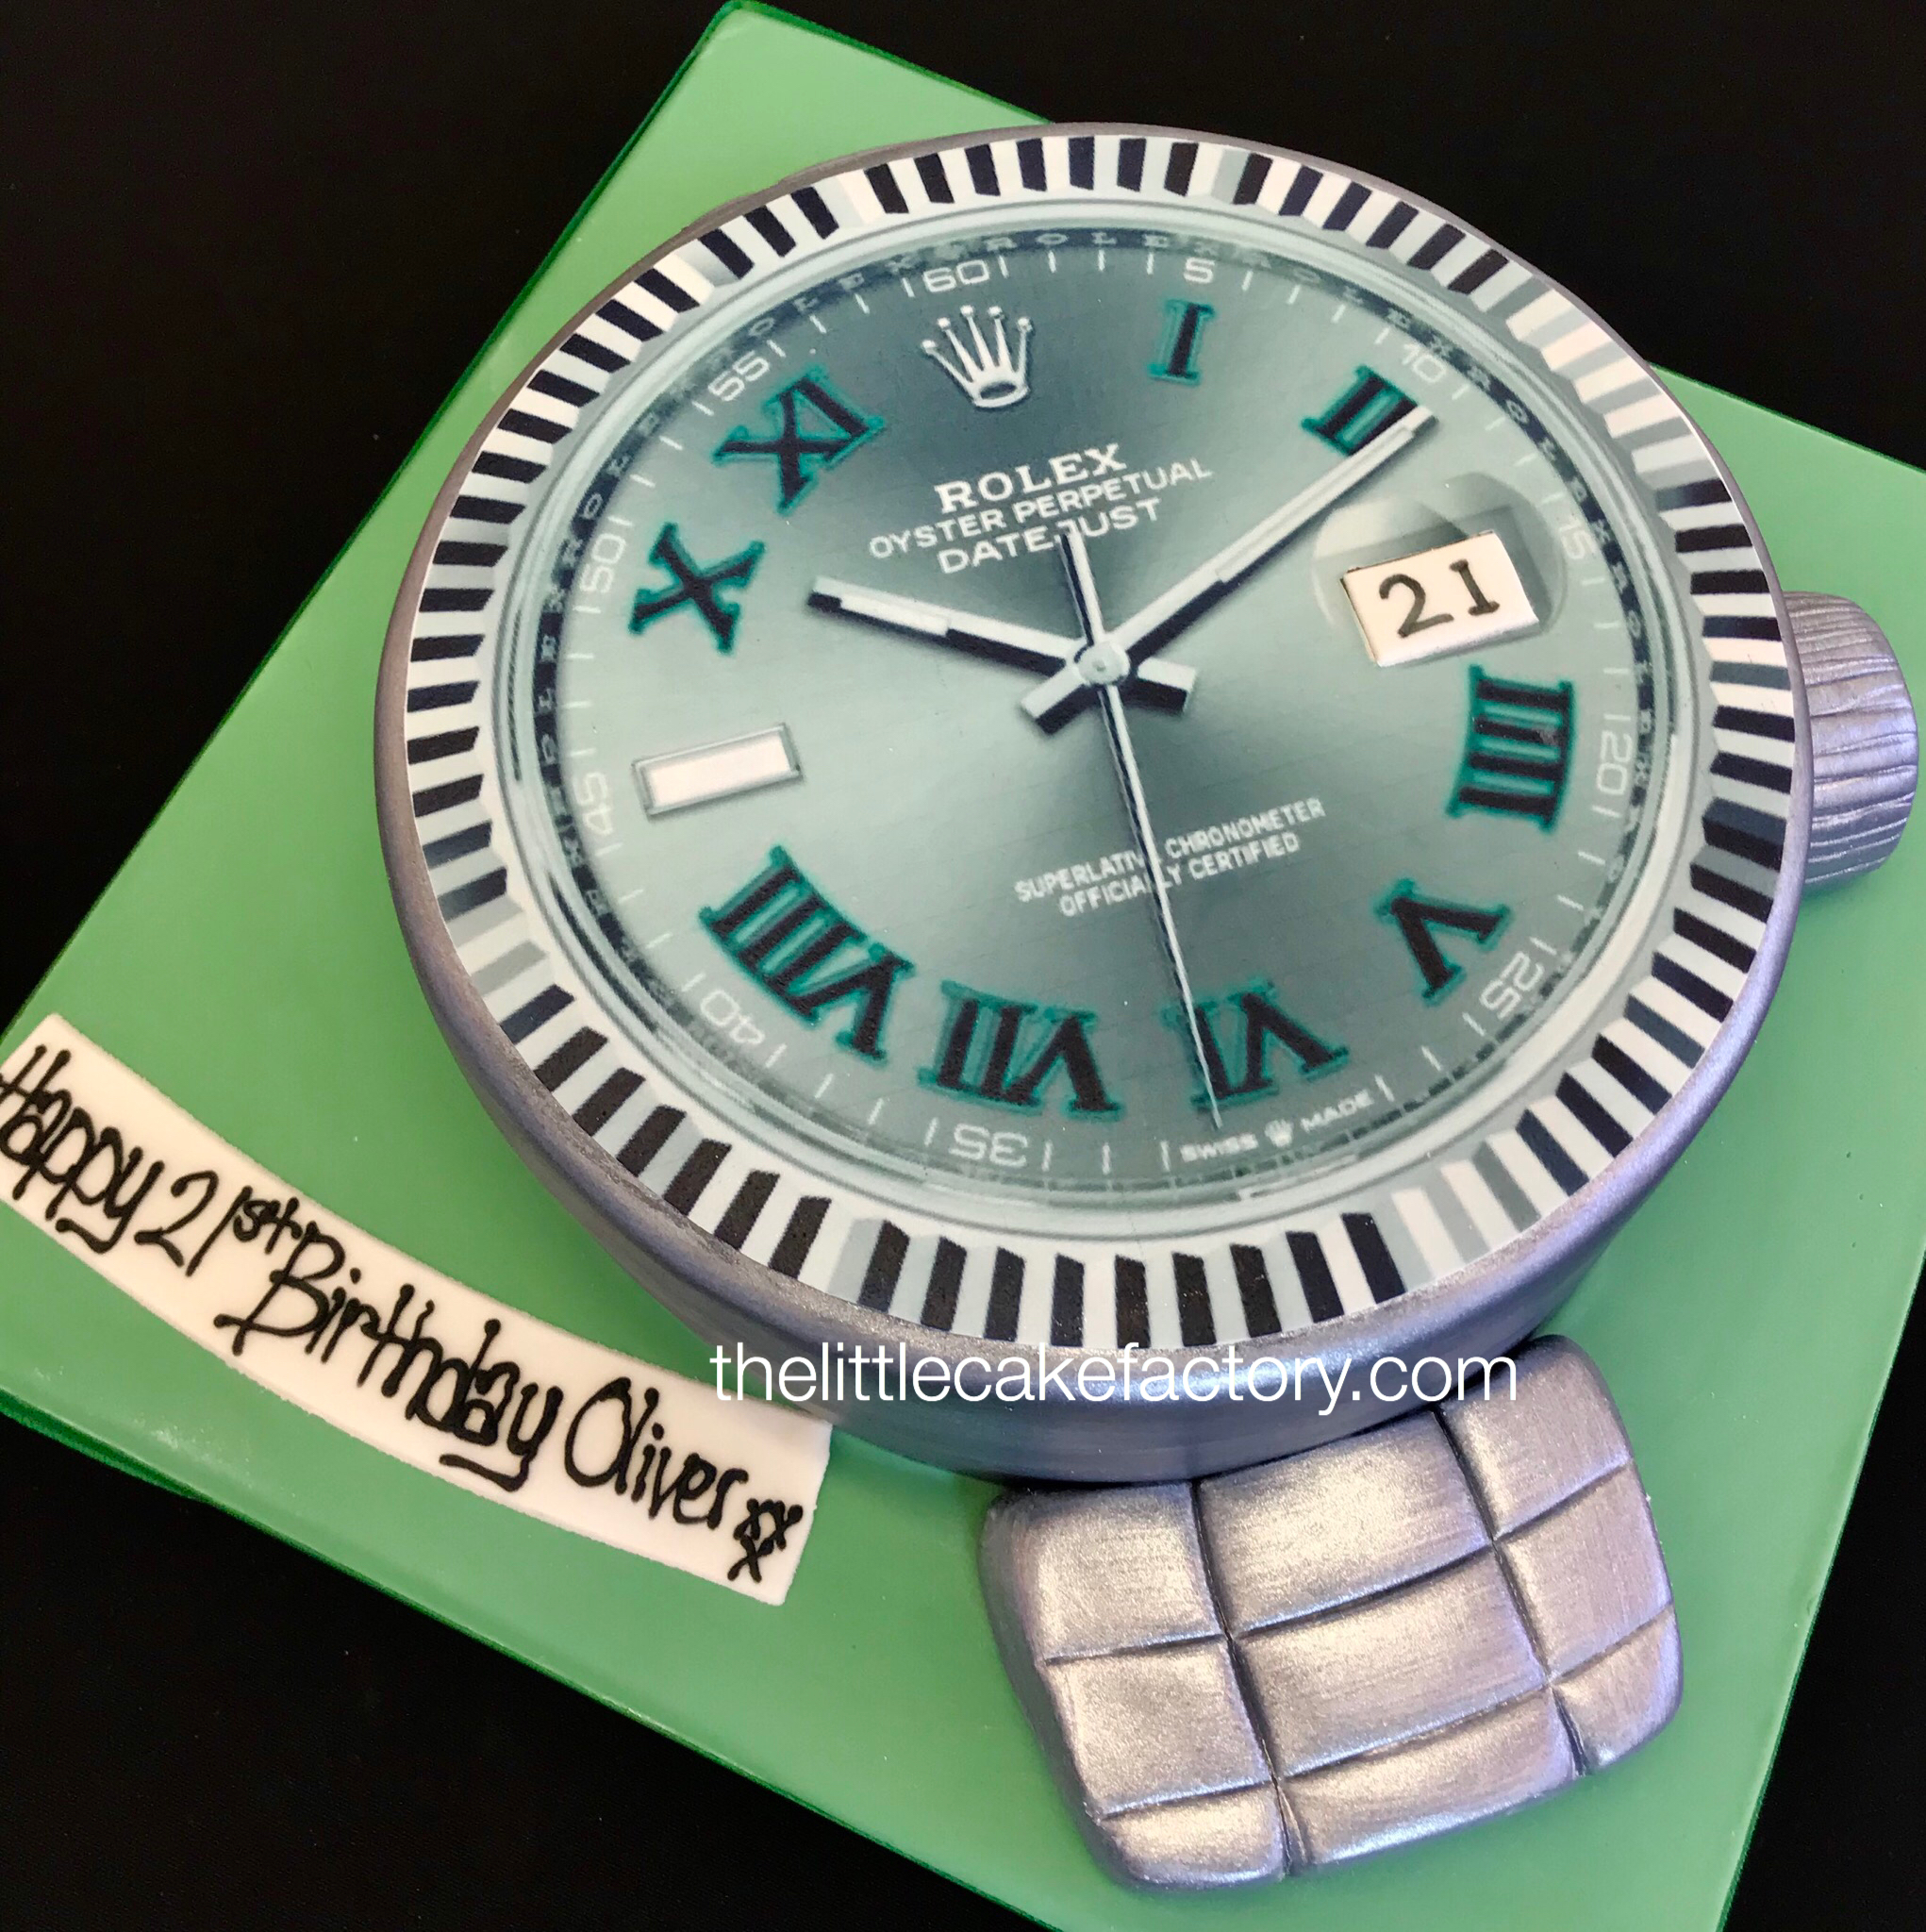 rolex wimbledon watch cake Cake | Celebration Cakes